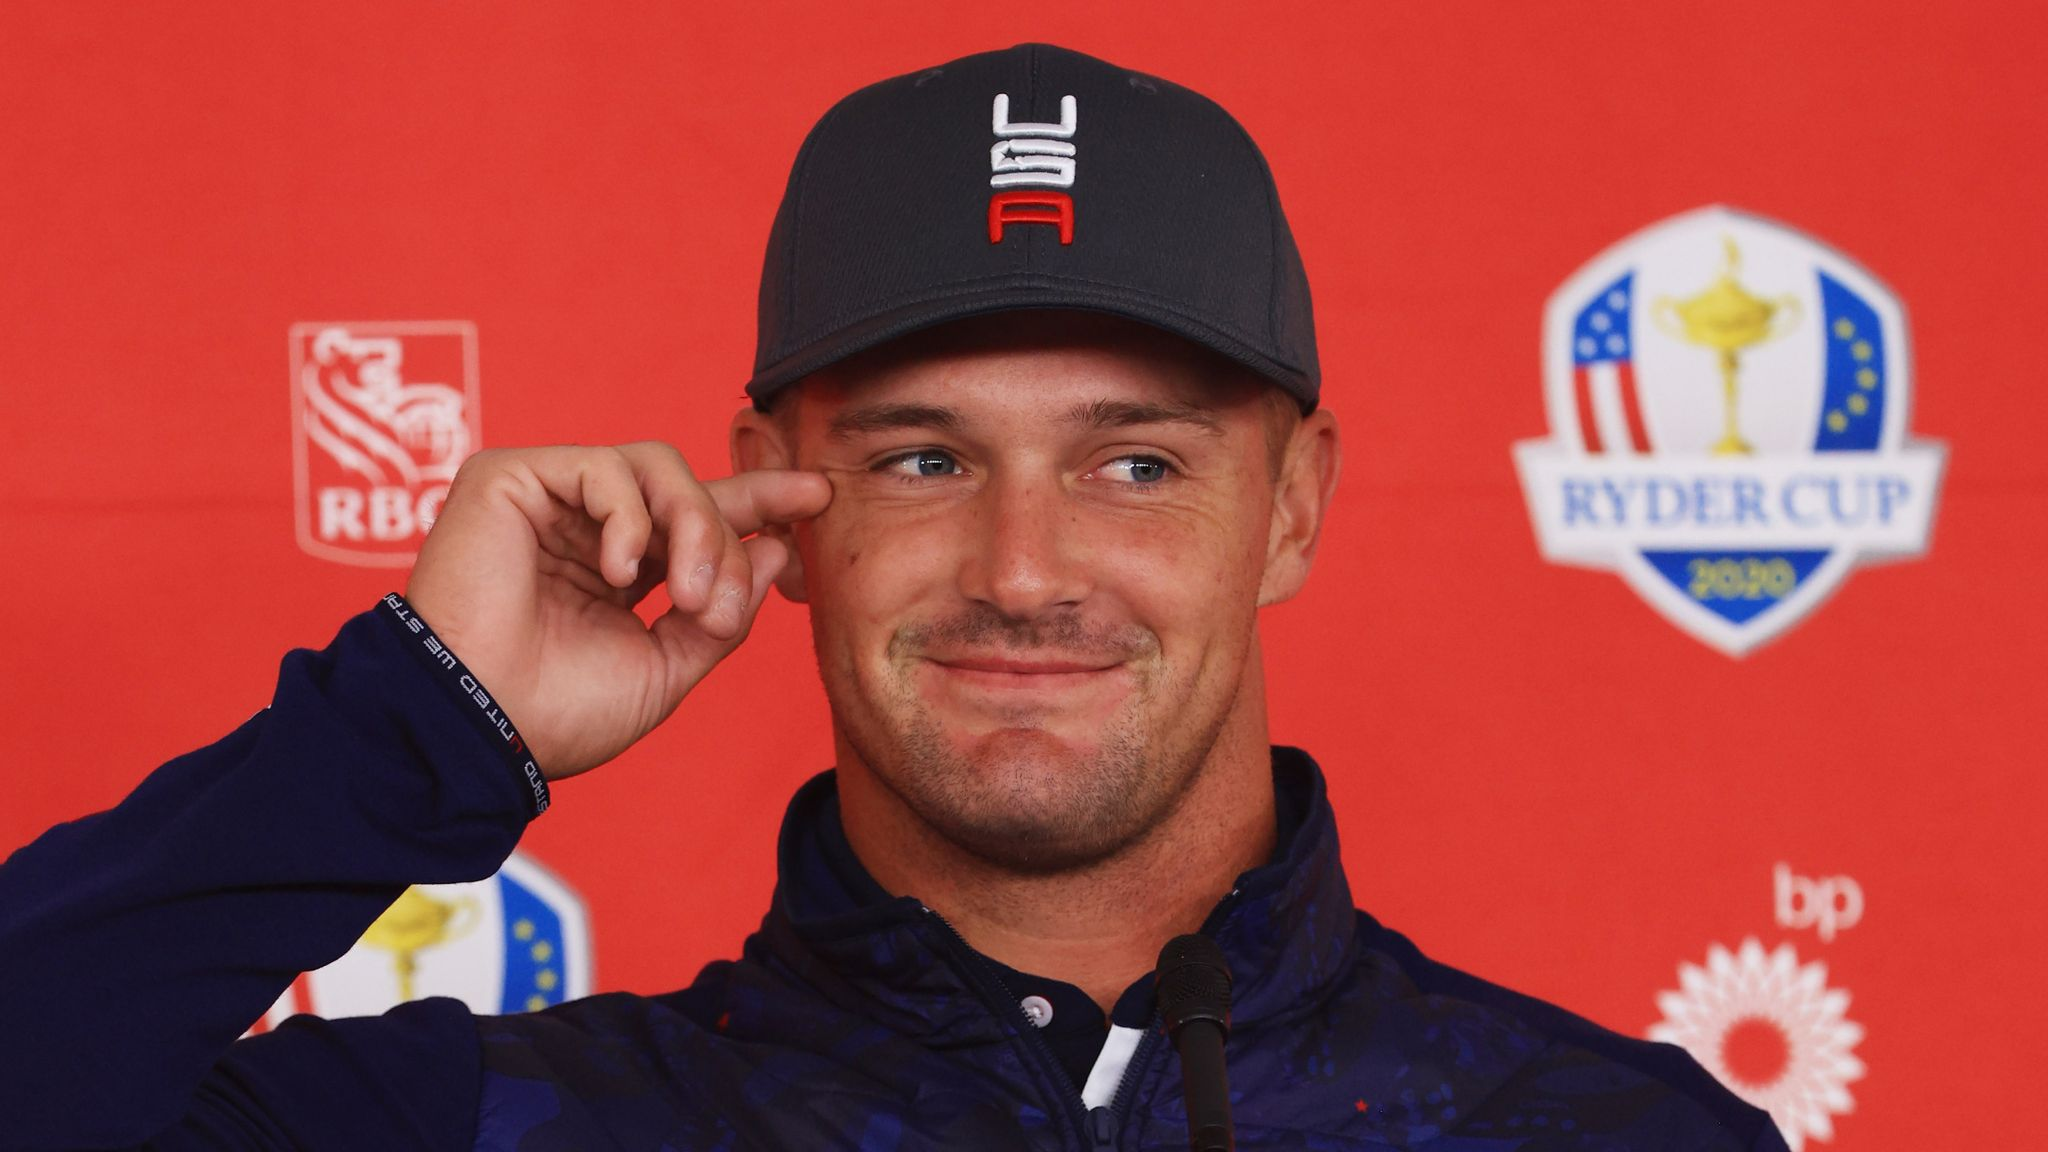 Ryder Cup 2020: Bryson DeChambeau plays down Brooks Koepka feud and hints  at 'something fun' | Golf News | Sky Sports